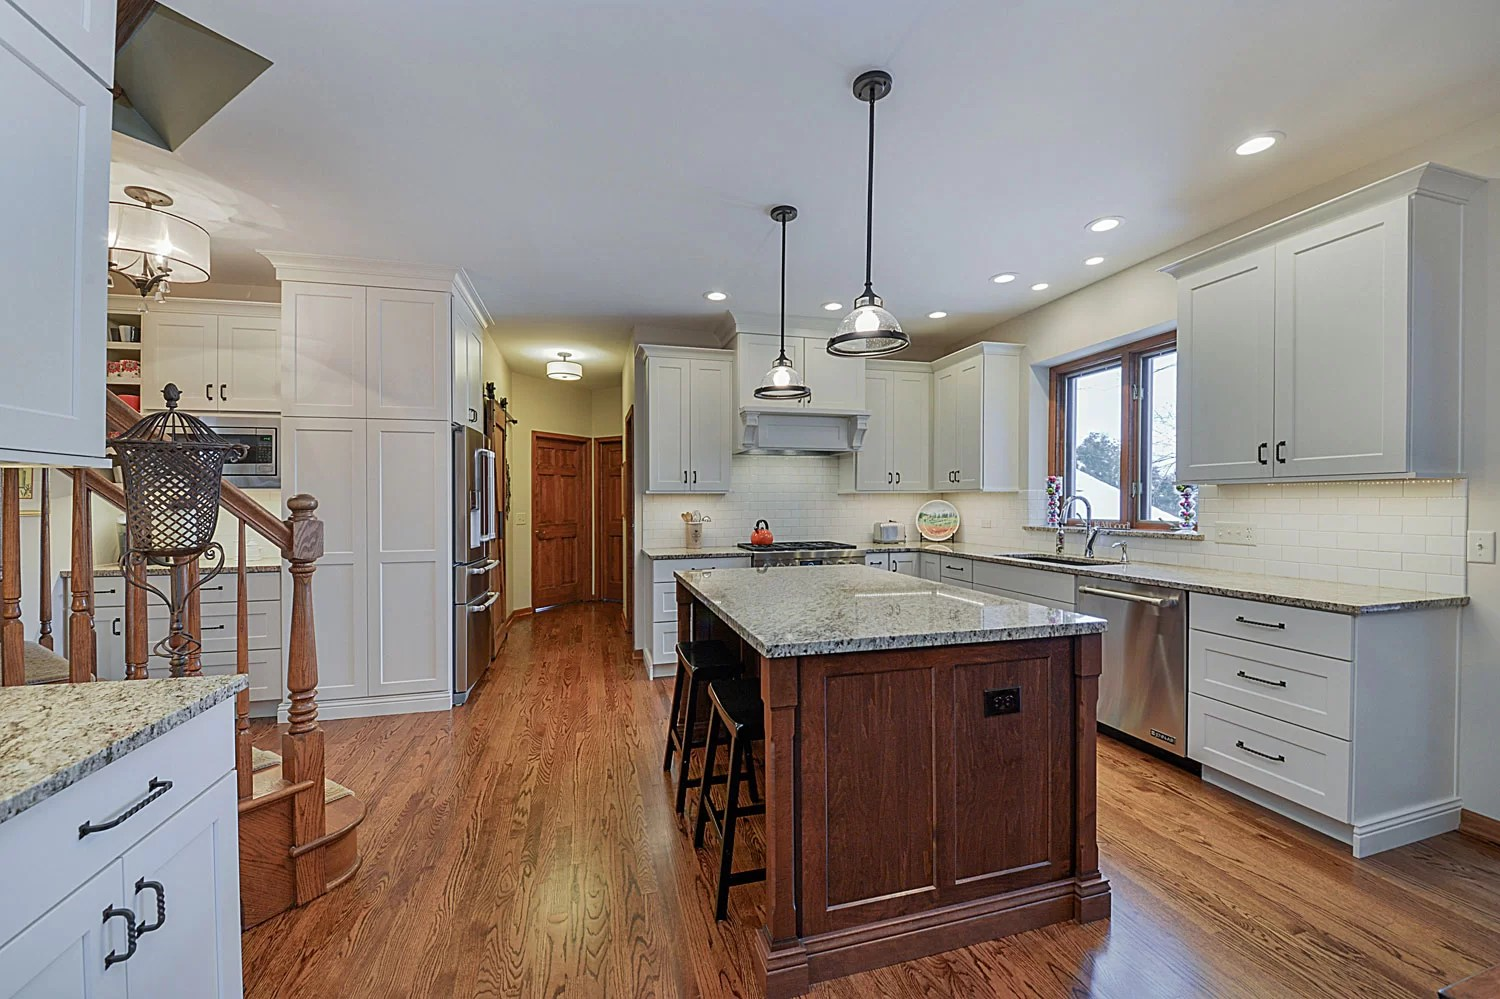 patrick & sharon's kitchen remodel pictures | home remodeling